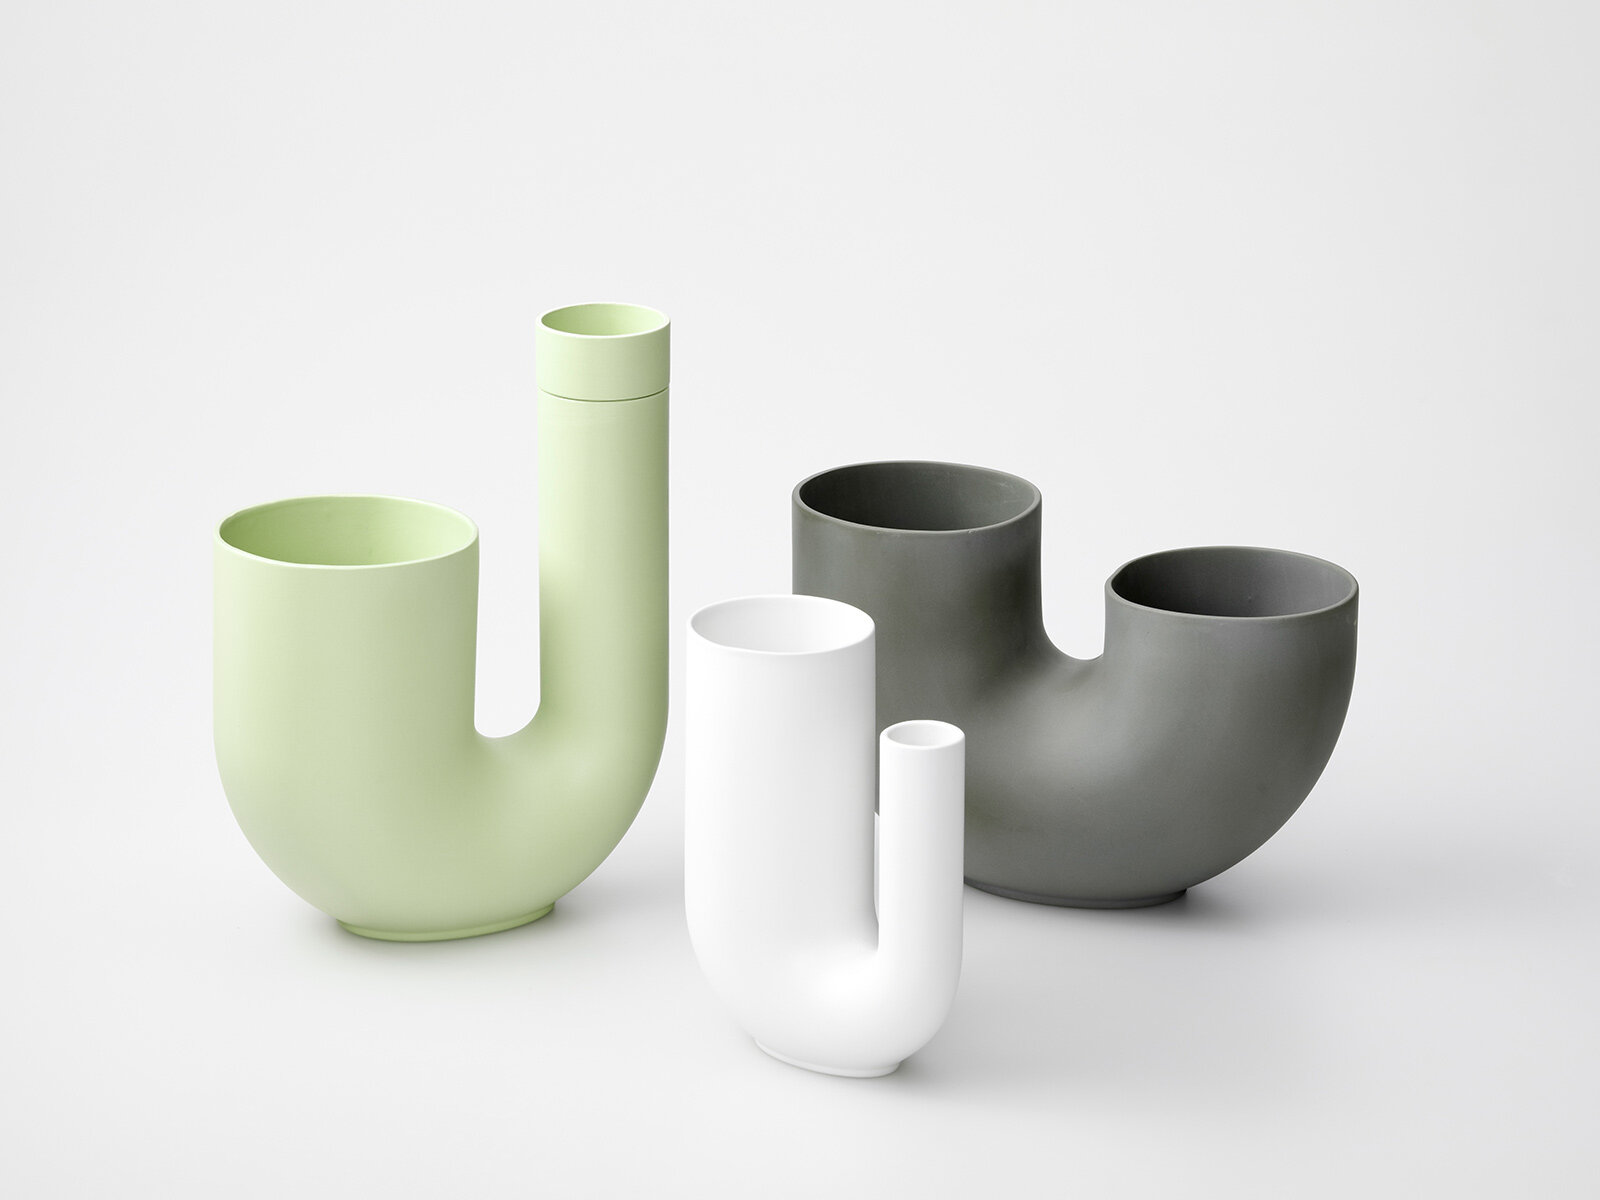 Sebastian Bergne's  Ha' Porcelain vases 'Tuba' and 'Fruit'.  Ha' Porcelain  is a new company that brings contemporary design together with traditional porcelain workshops in Japan. Photograph by Ruth Ward.